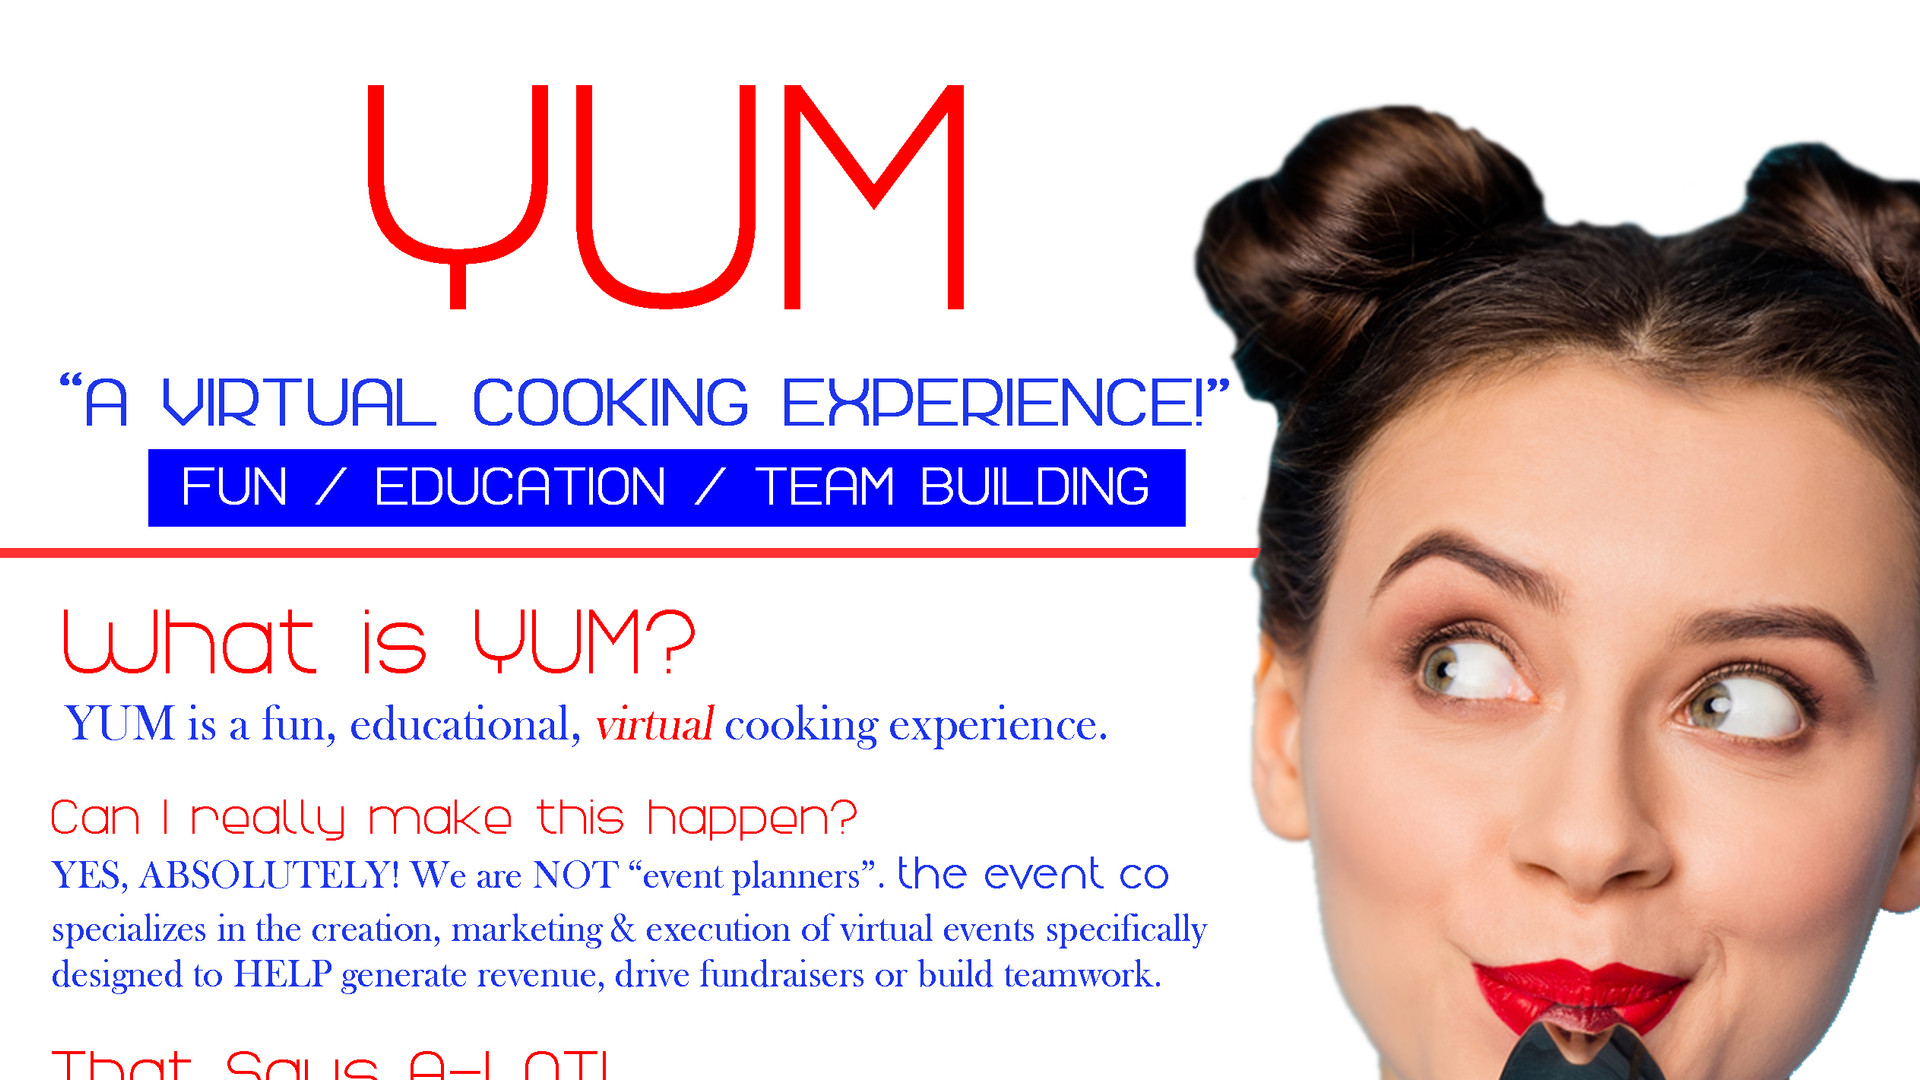 THE EVENT CO YUM